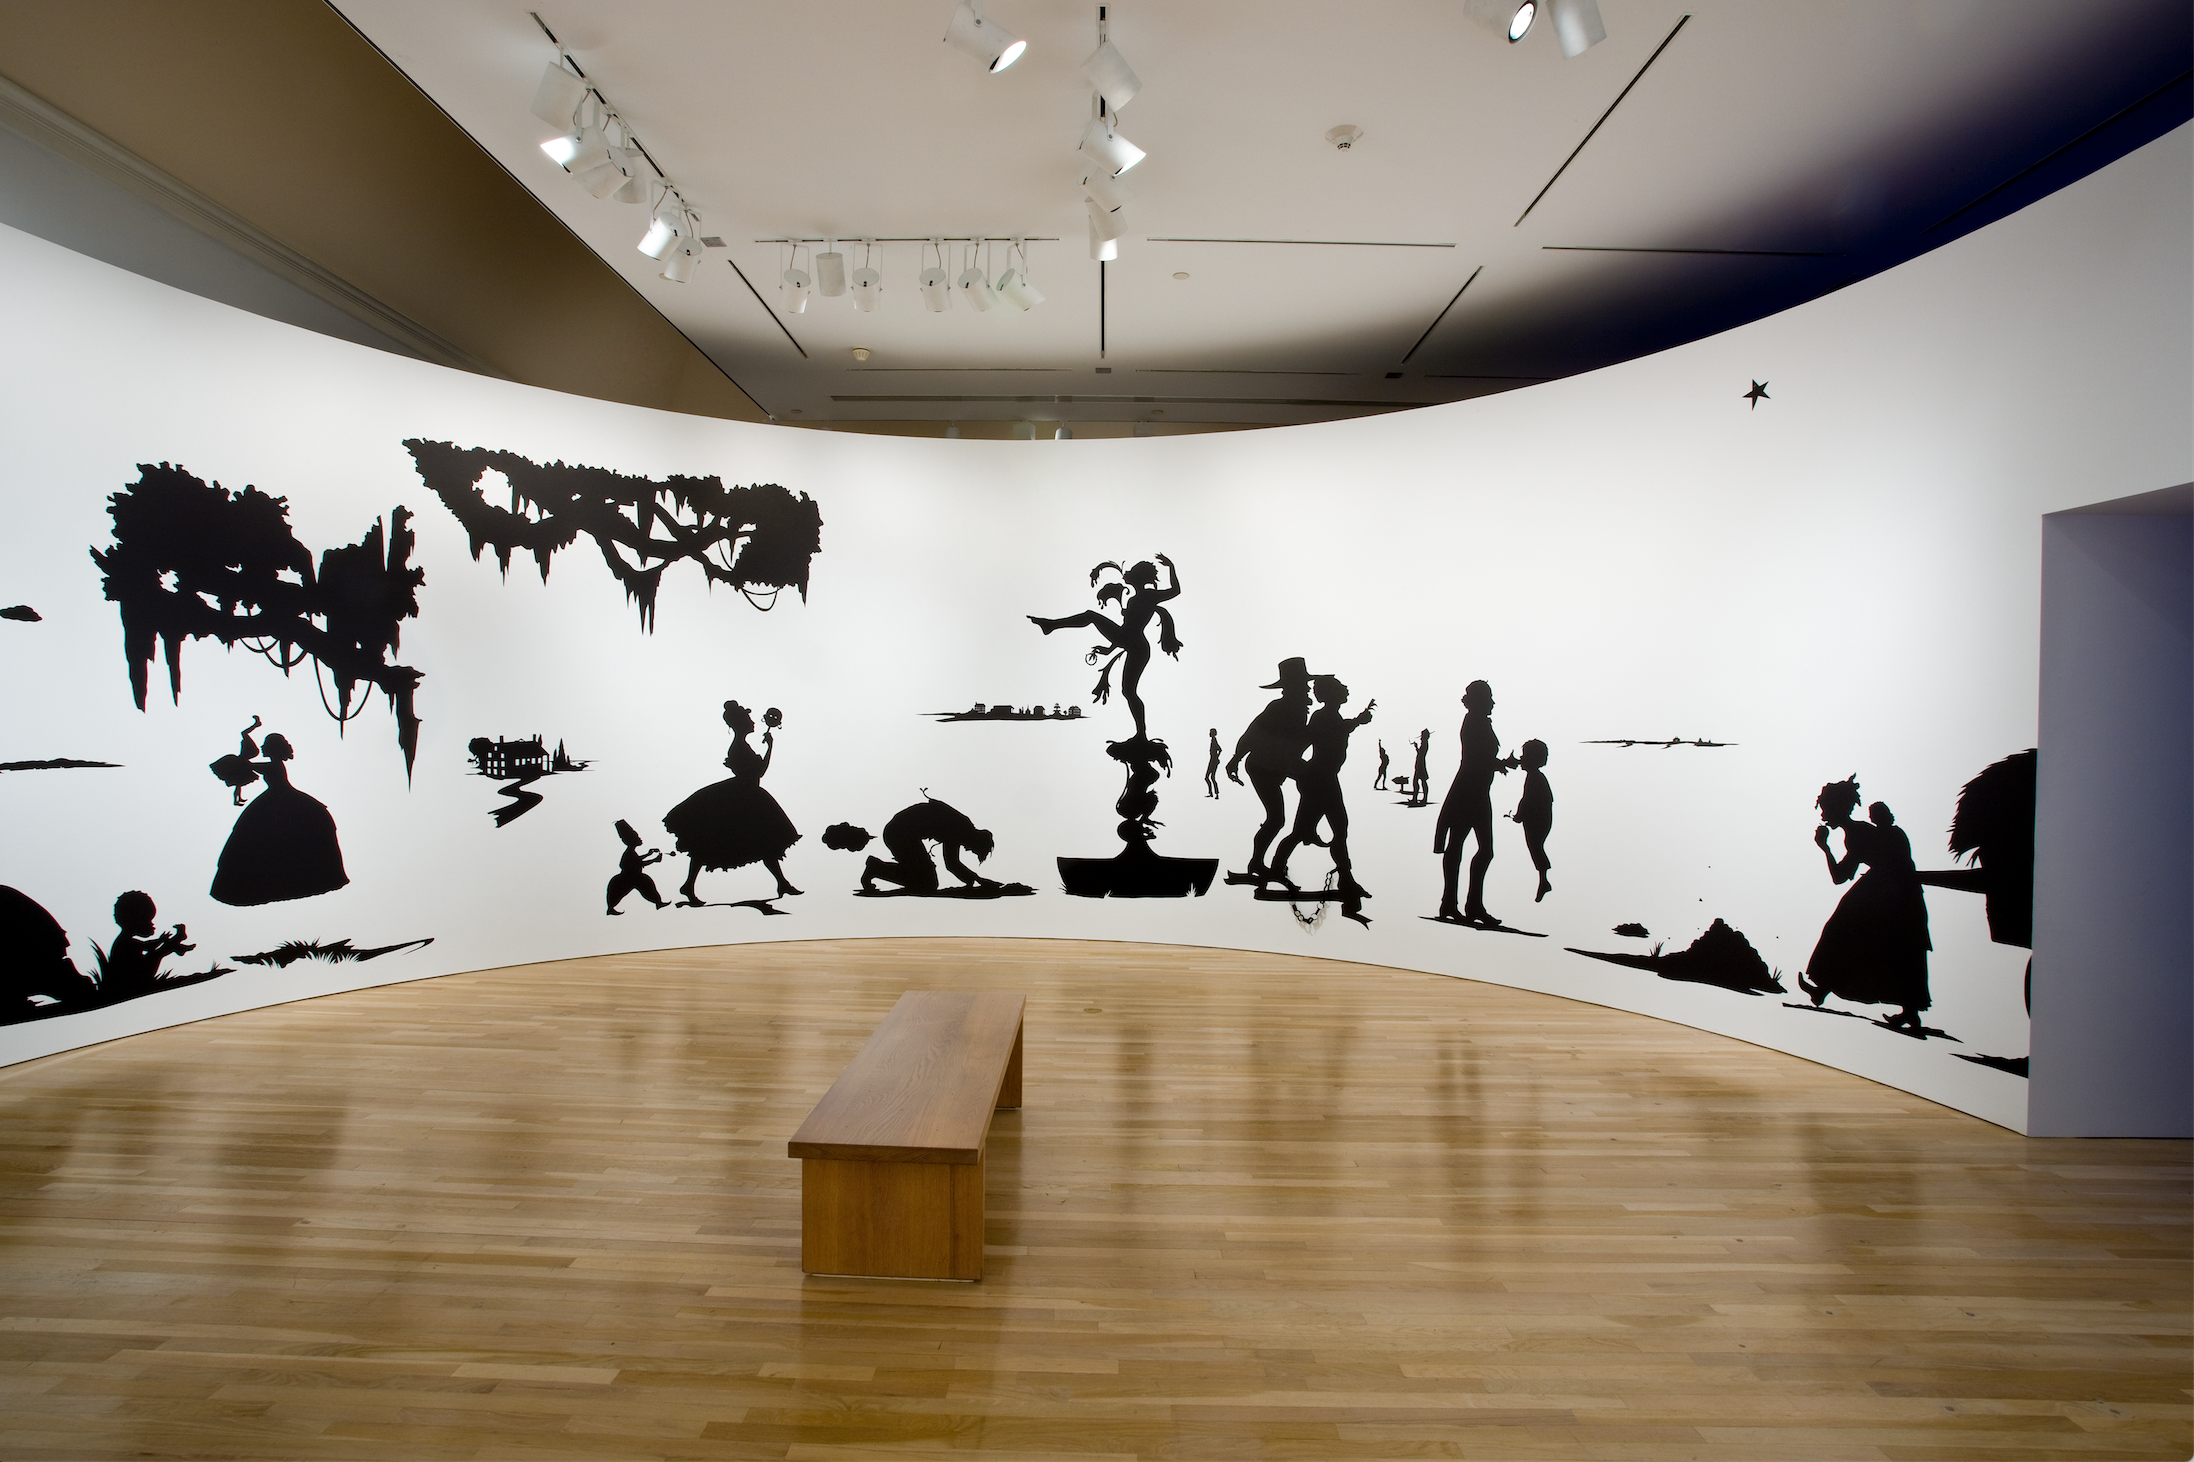 5.5 Life in Those Shadows! Kara Walker's Post-Cinematic ...